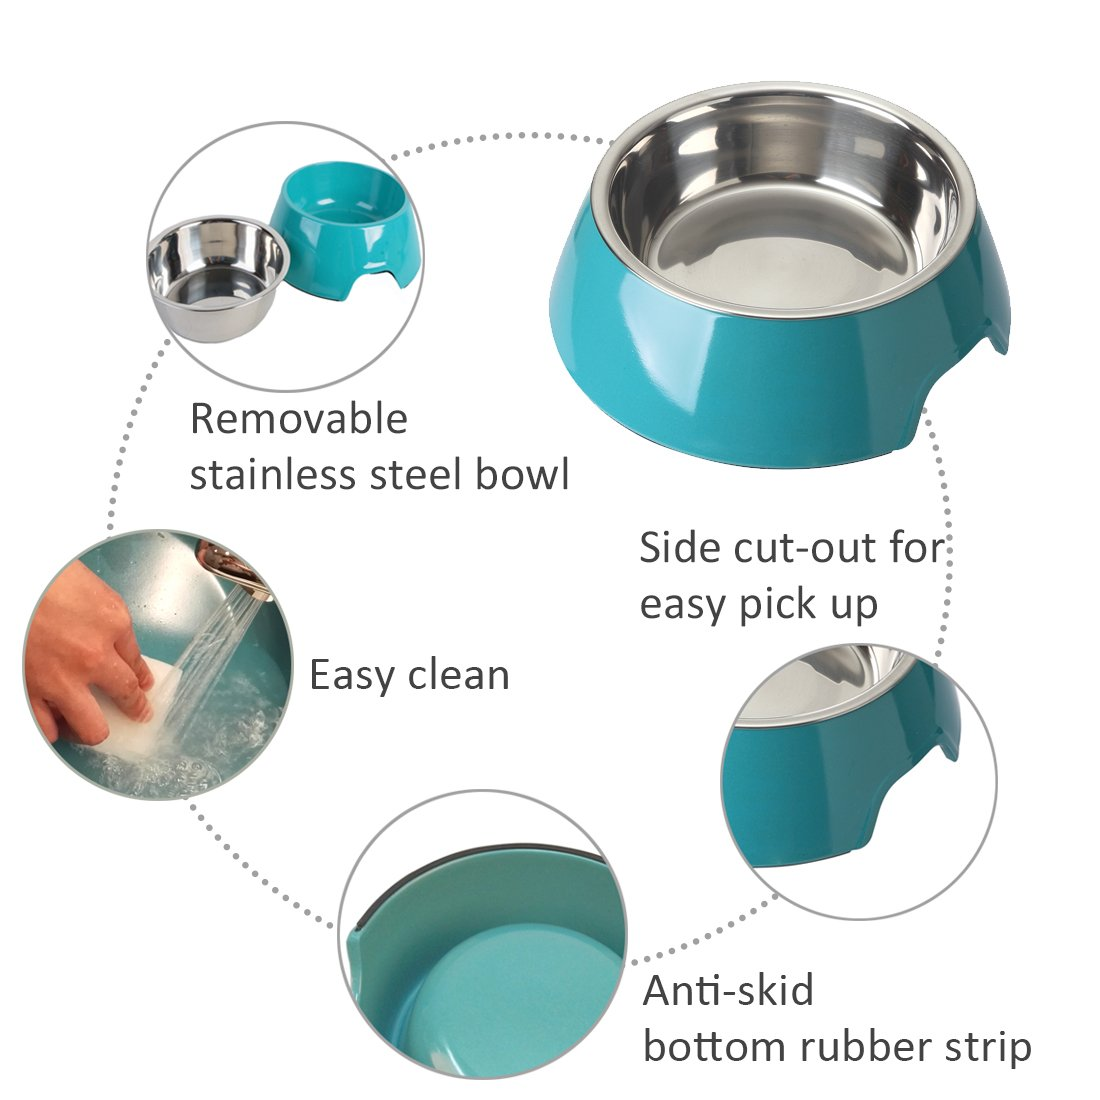 Mainstreet Dog Bowls Stainless Steel Bamboo Fiber Water and Food Feeder with Stand Animal Pet Food Holder Eco-Friendly for Dogs Cats (Blue, Medium) by Mainstreet (Image #6)